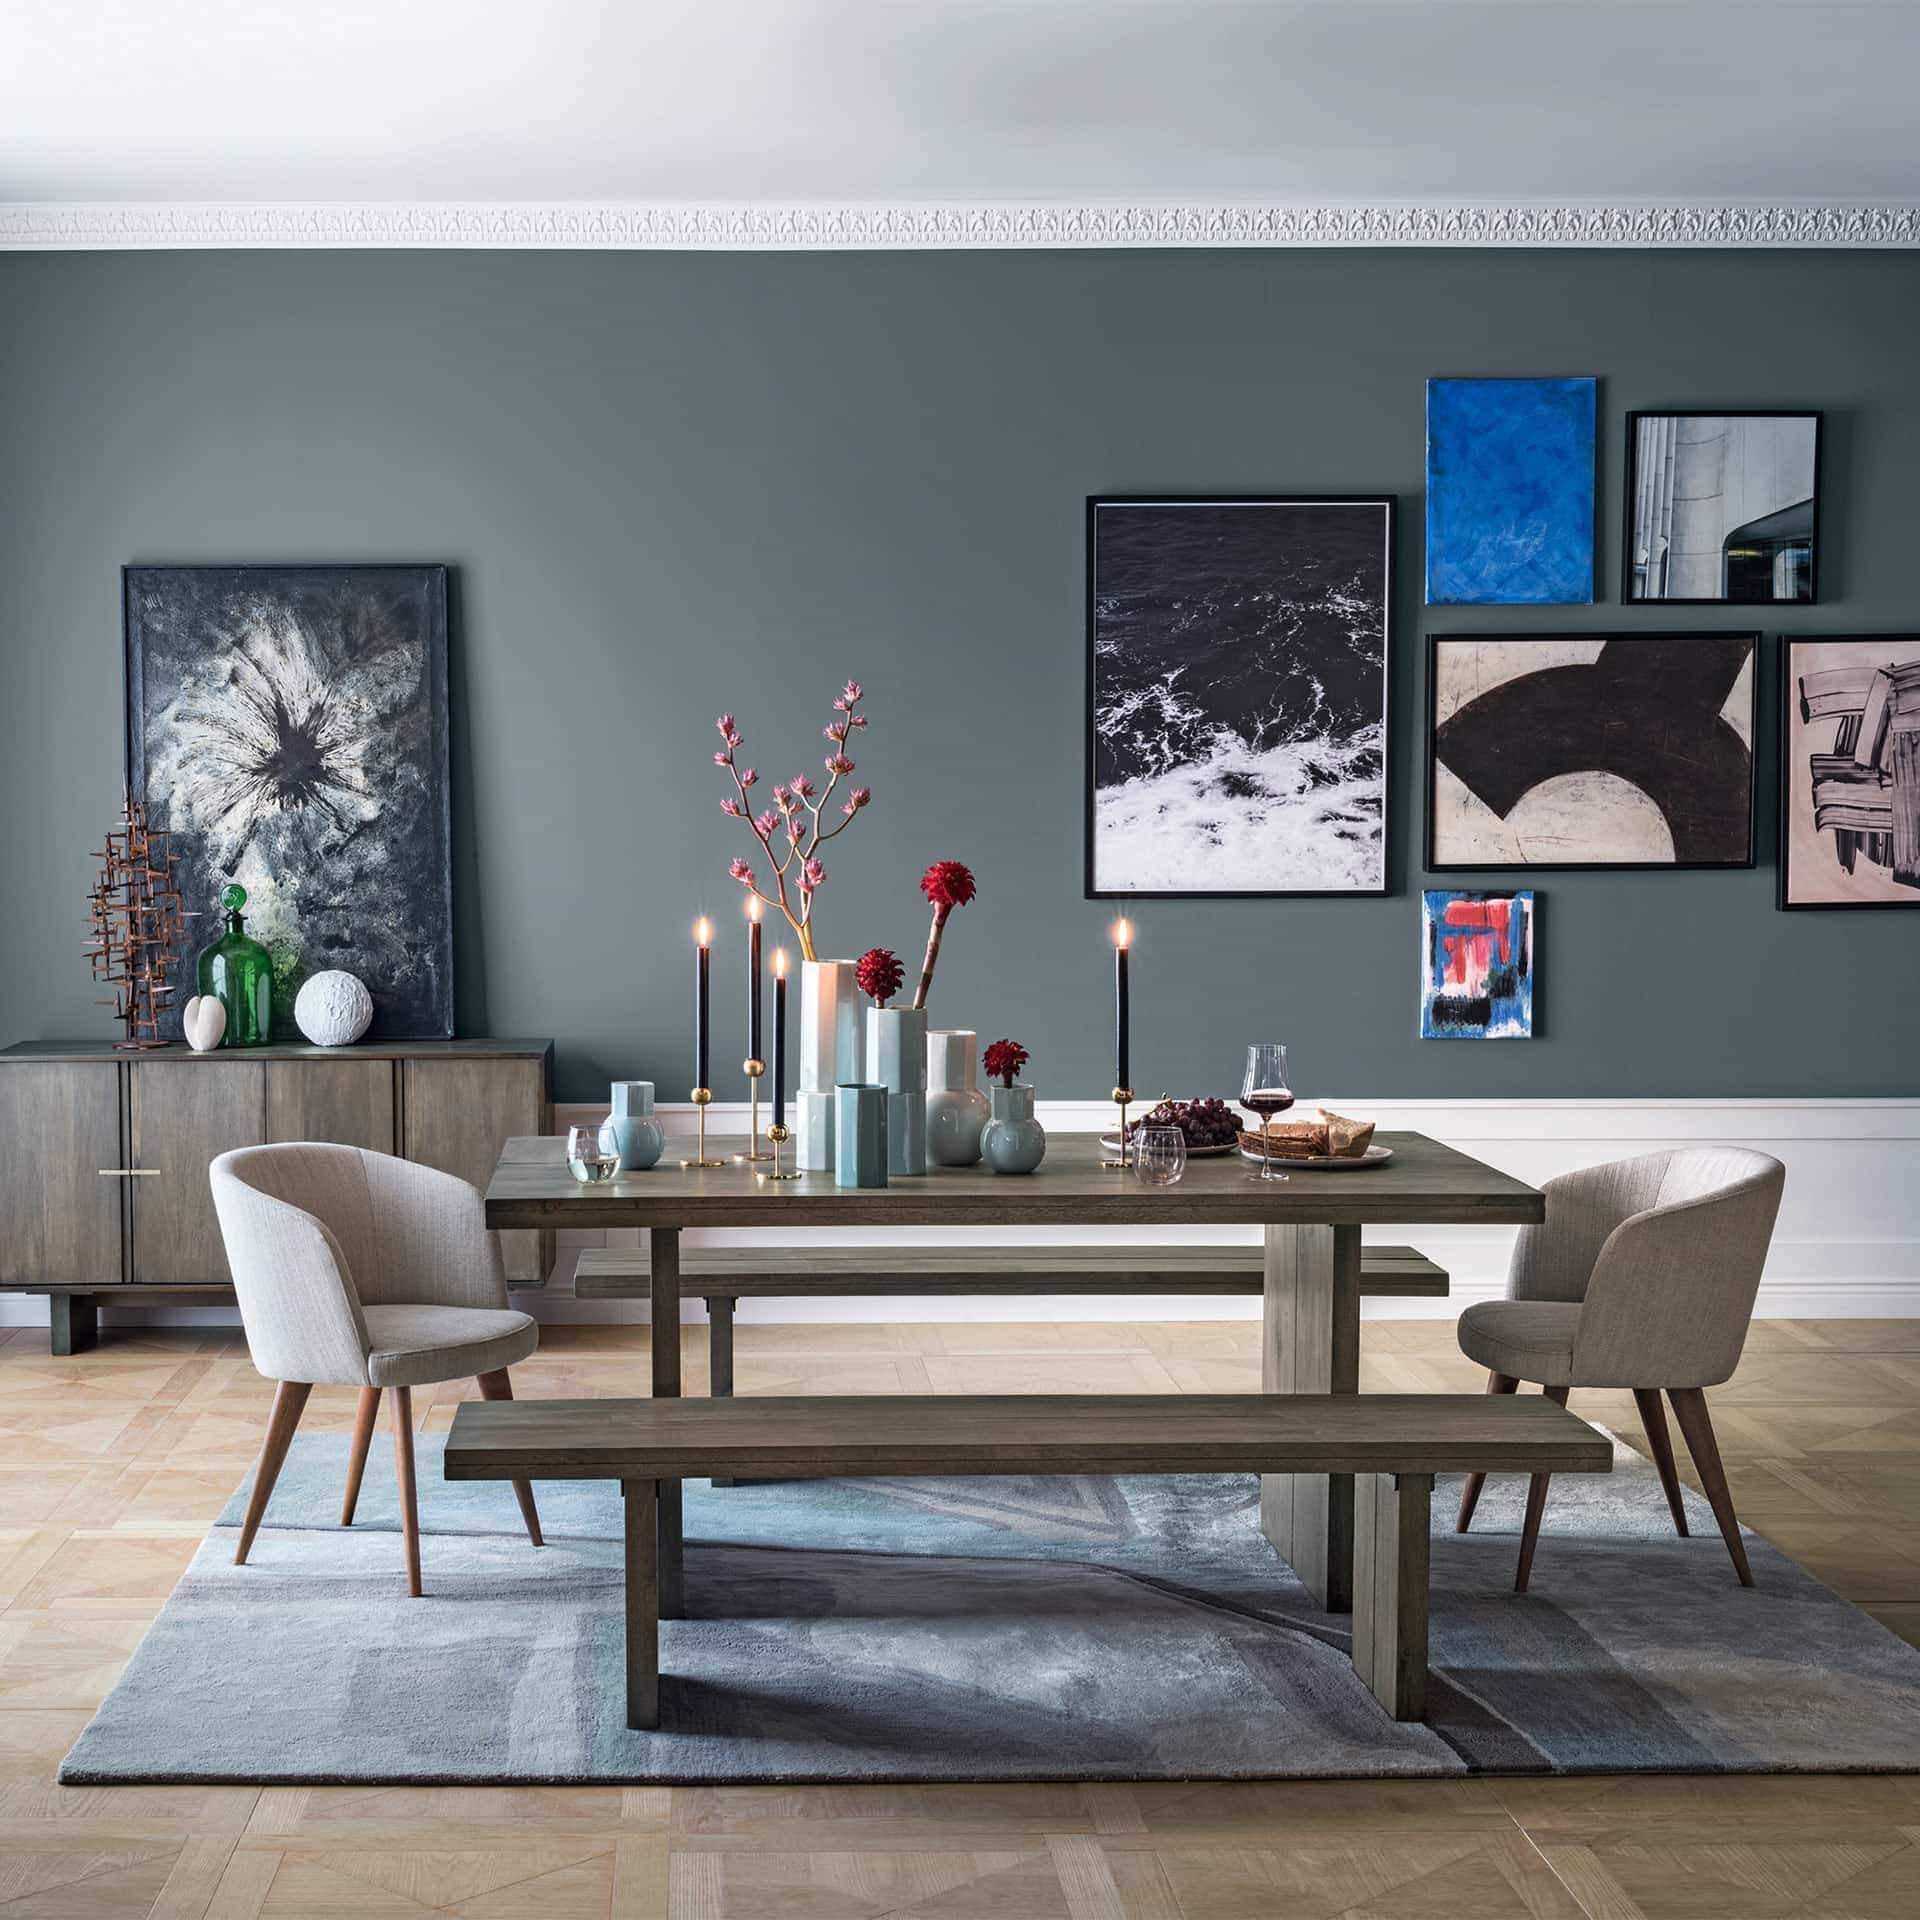 Feature Wall Dining Room Ideas Part - 49: West Elm Dining Room With Grey Feature Wall And Gallery Wall With Pink  Artworks